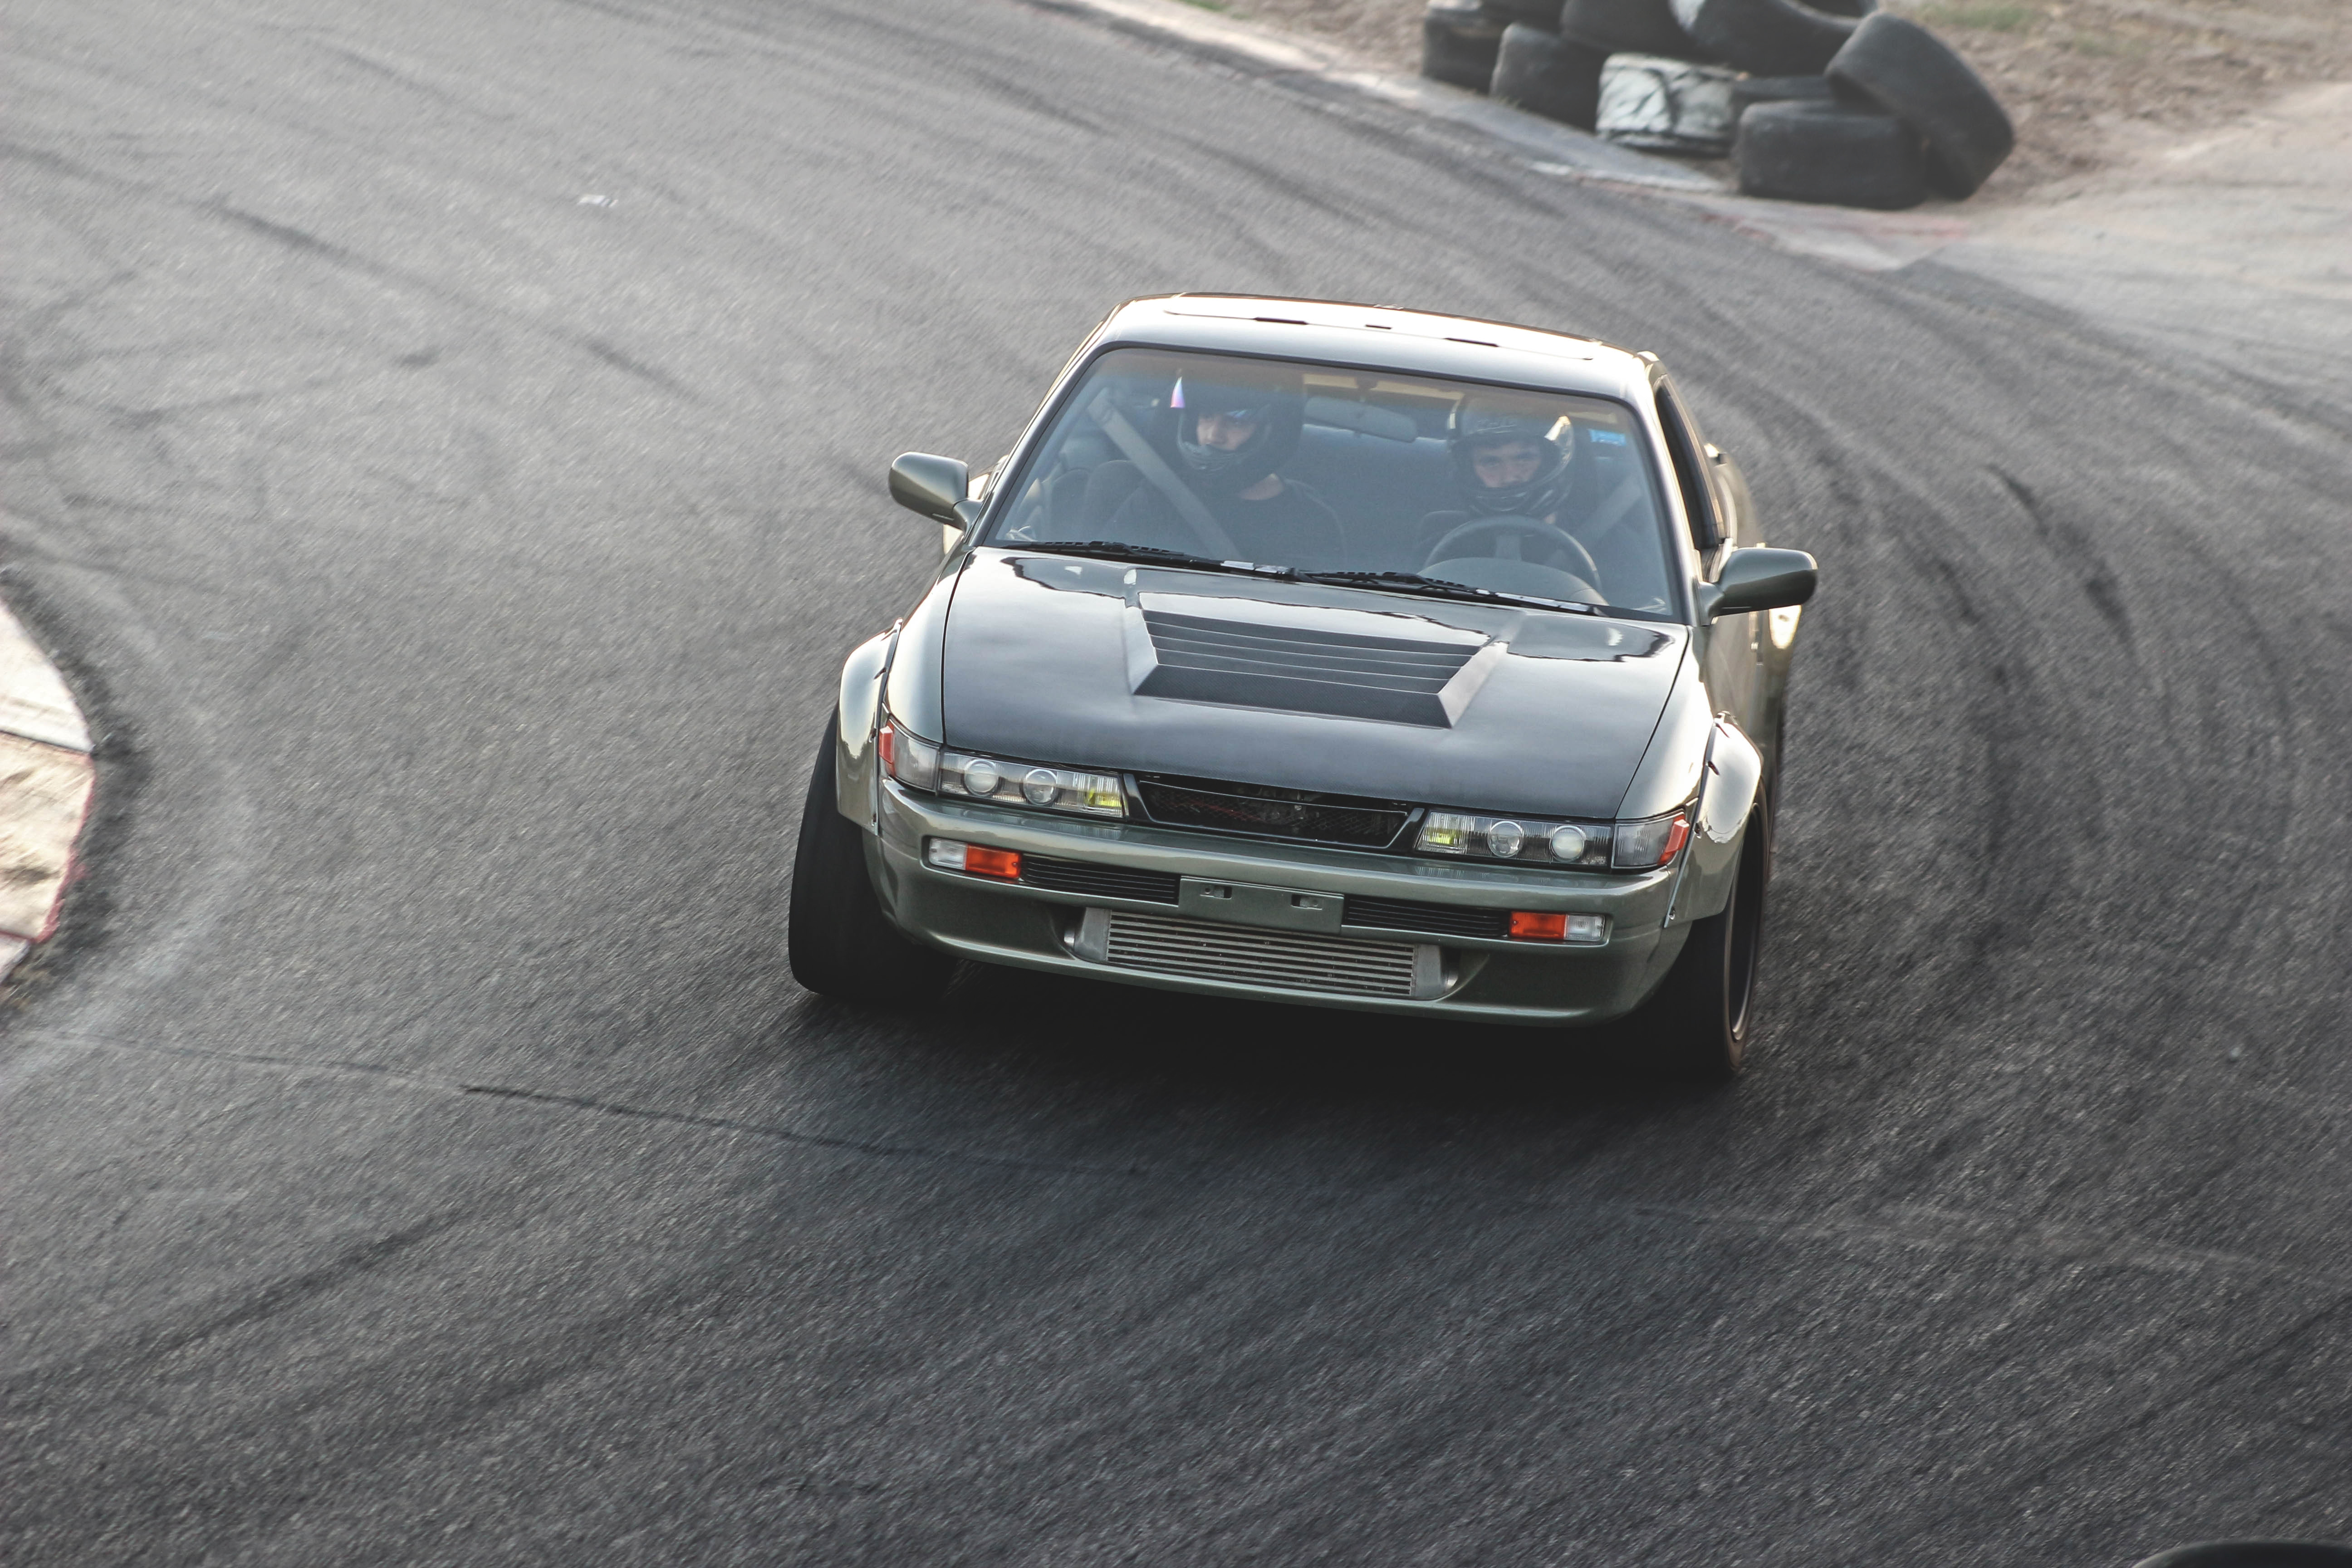 s13 time attack!?